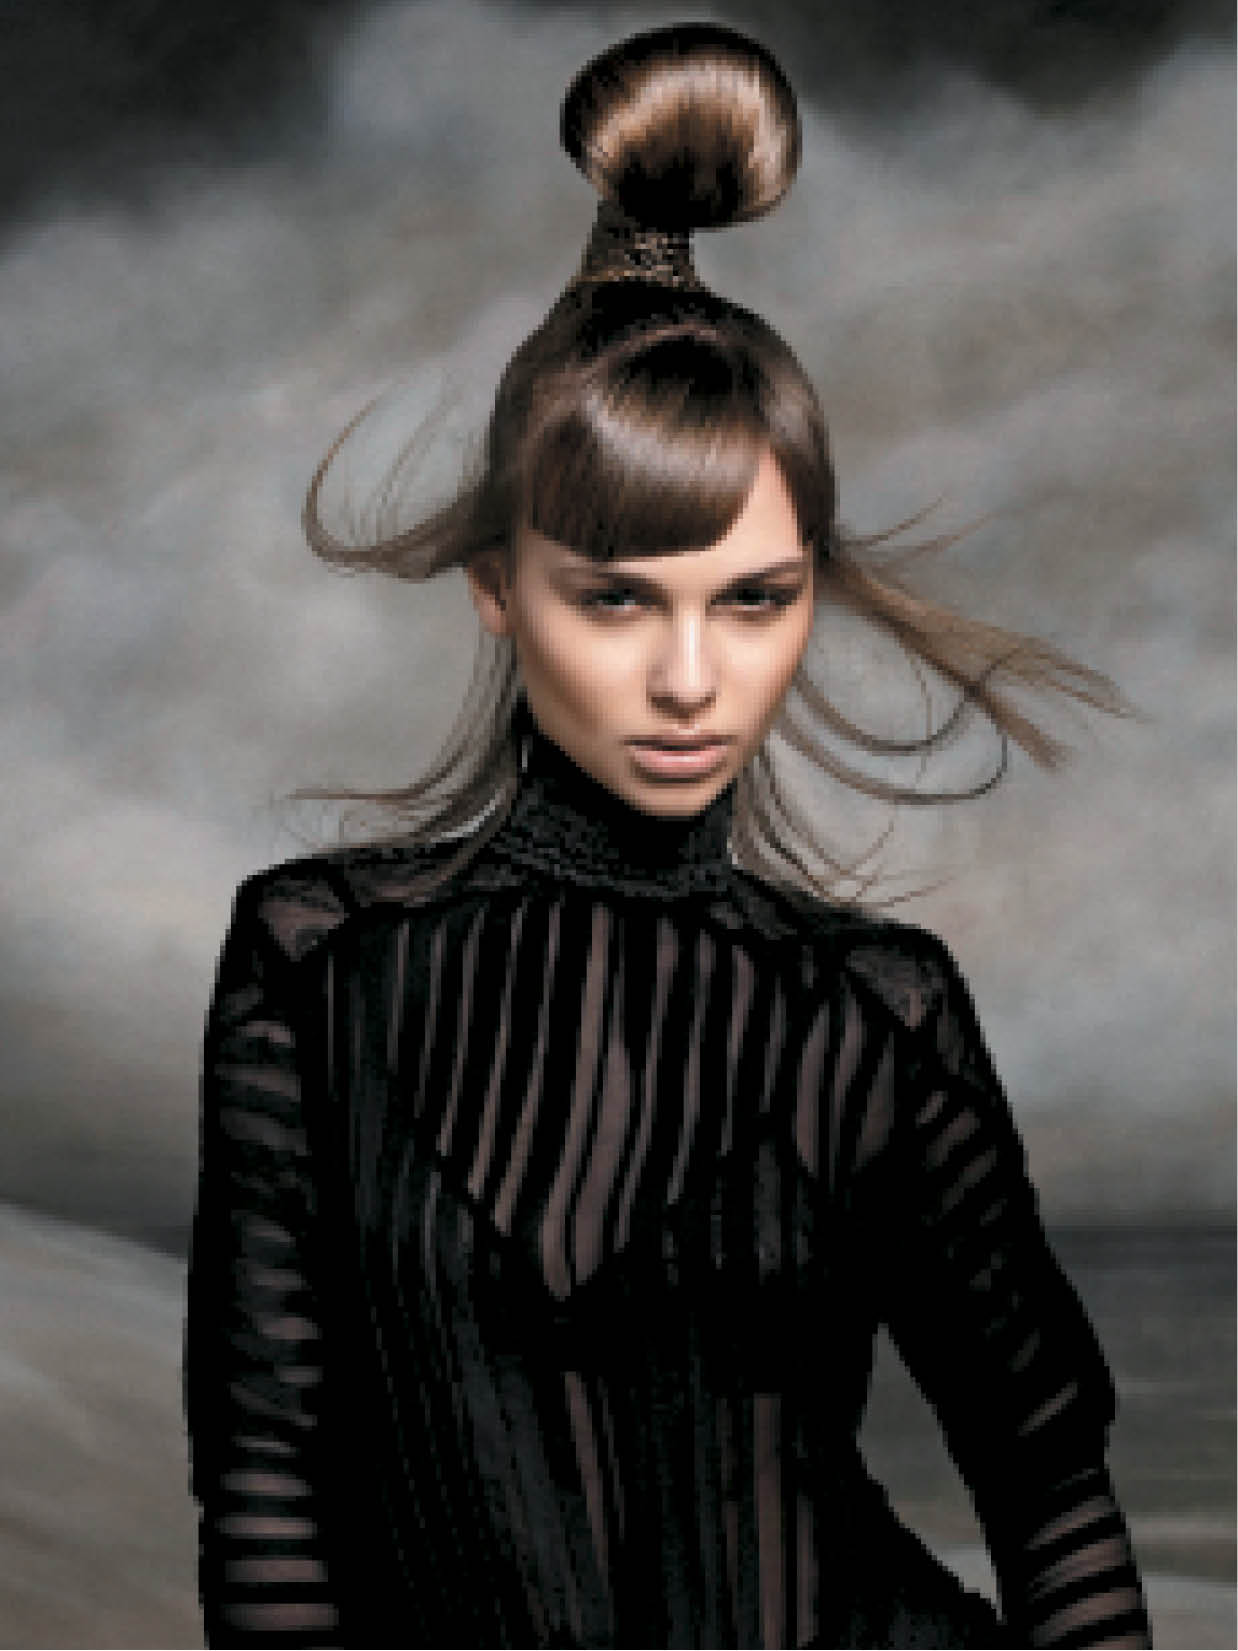 To craft a trendy topknot, the team left sections out in the front and side of the head as they brushed locks into a sleek, high ponytail. Then they combed hair back and smoothed it. They plaited the remaining hair, and wrapped it around the topknot.